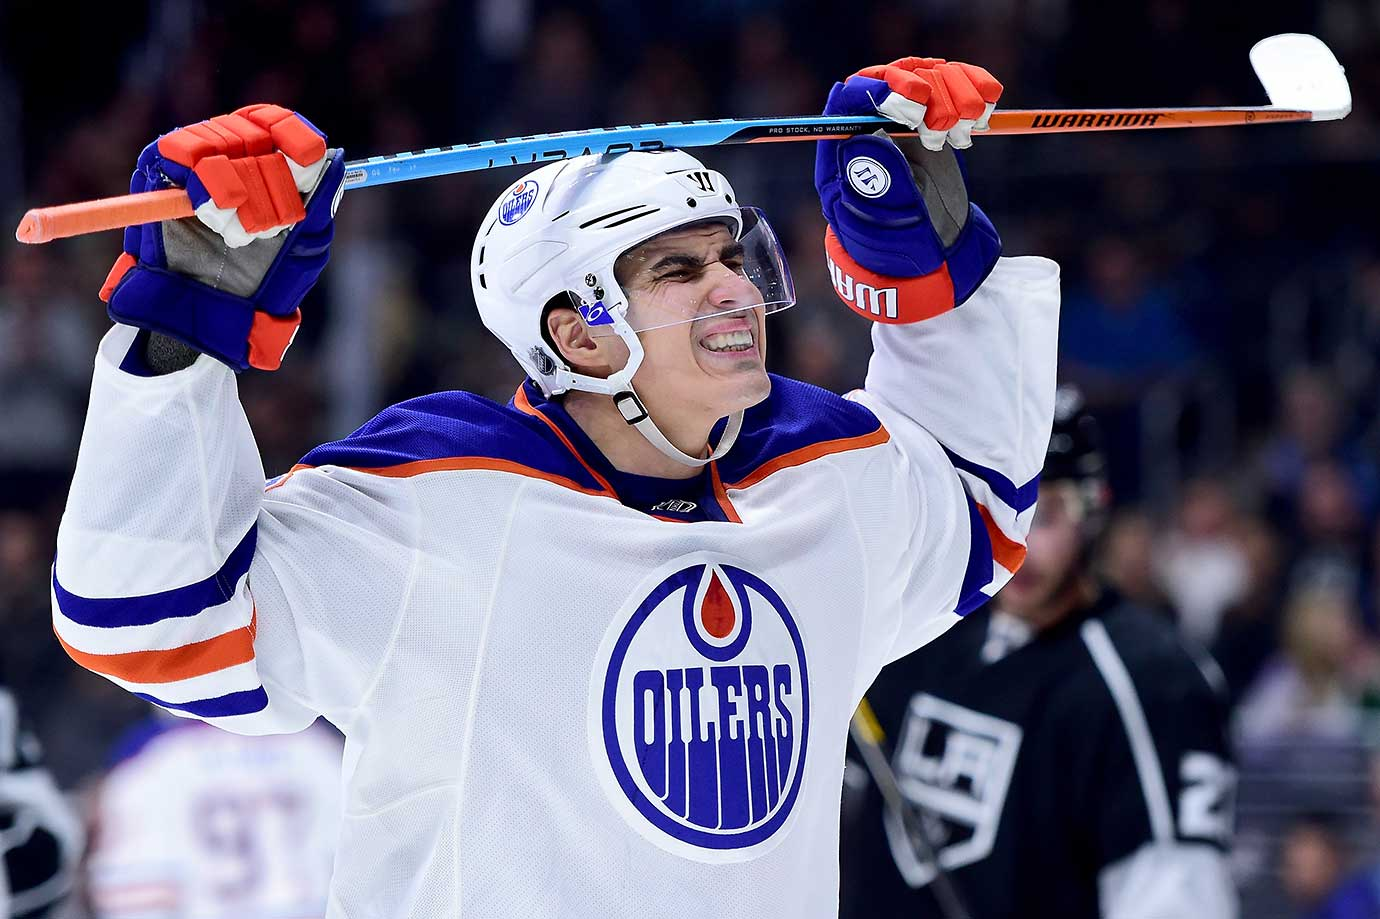 Nail Yakupov of Edmonton reacts after a missed chance to score during a 2-1 loss to the L.A. Kings.